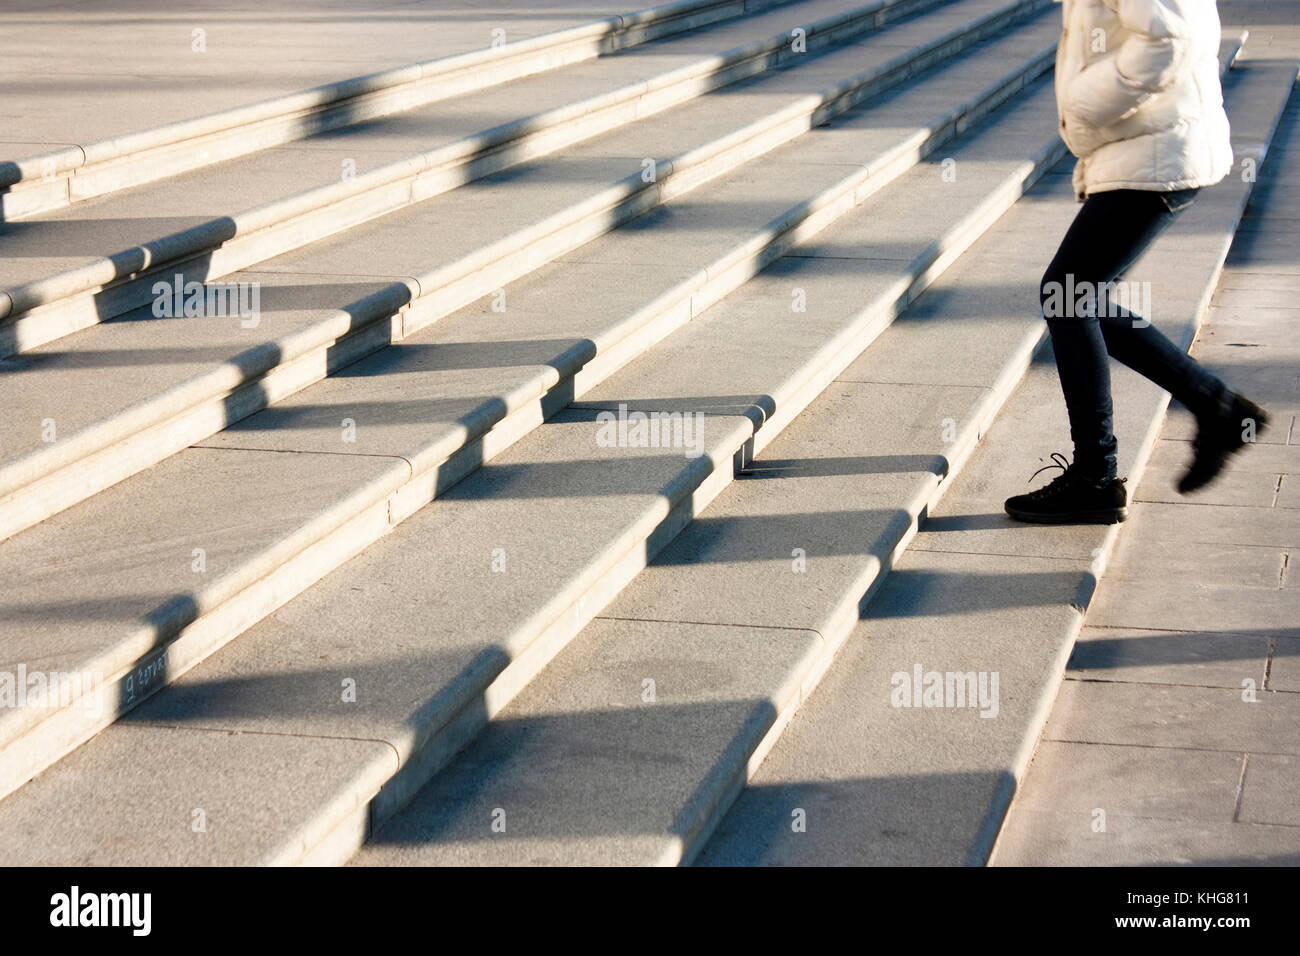 One teenage girl going up the stairs in motion blur and shadows of people following , on huge public outdoor stairway Stock Photo